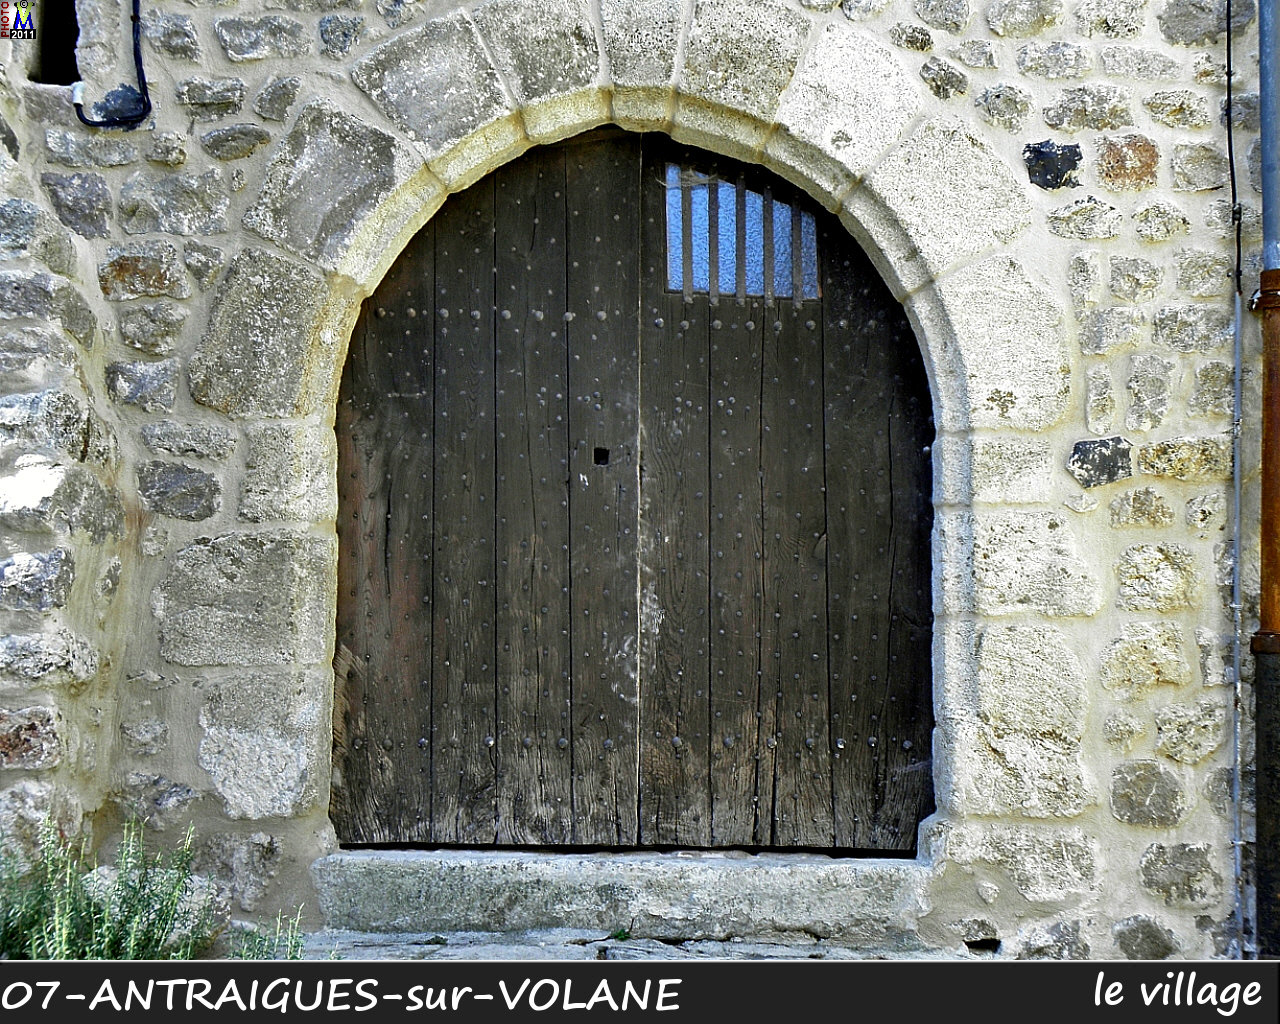 07ANTRAIGUES-VOLANE_village_126.jpg